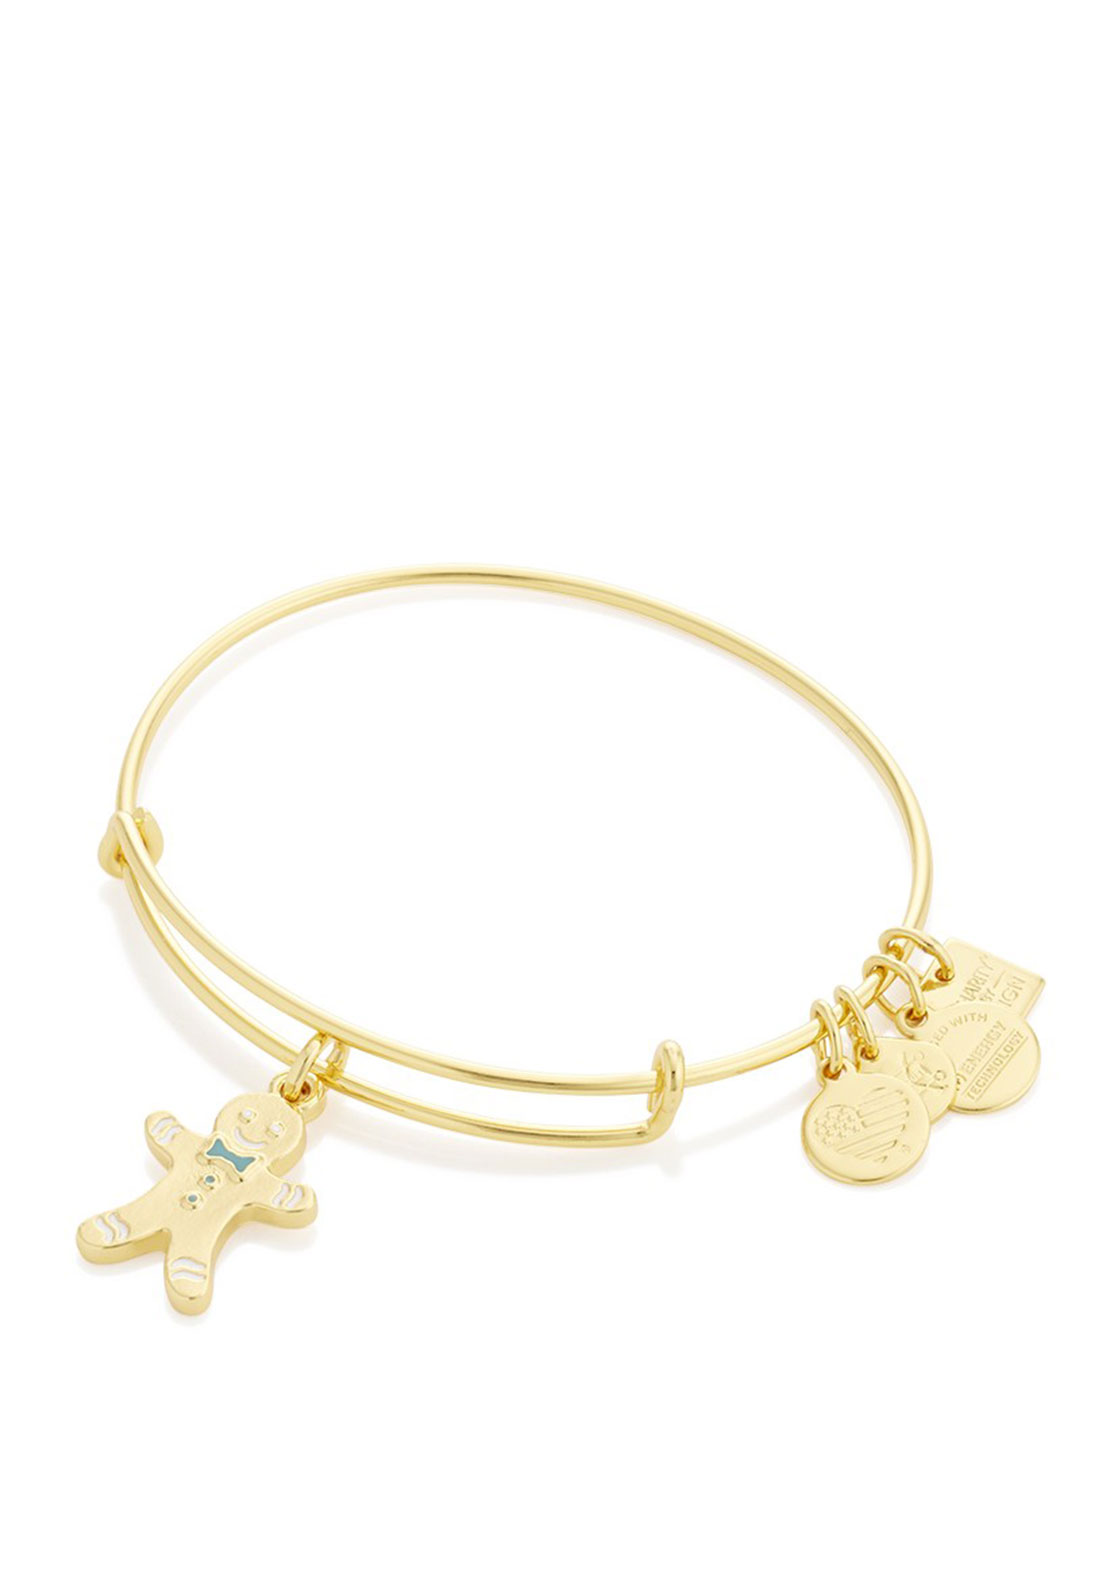 Alex and Ani Gingerbread Man Charm Bracelet, Gold